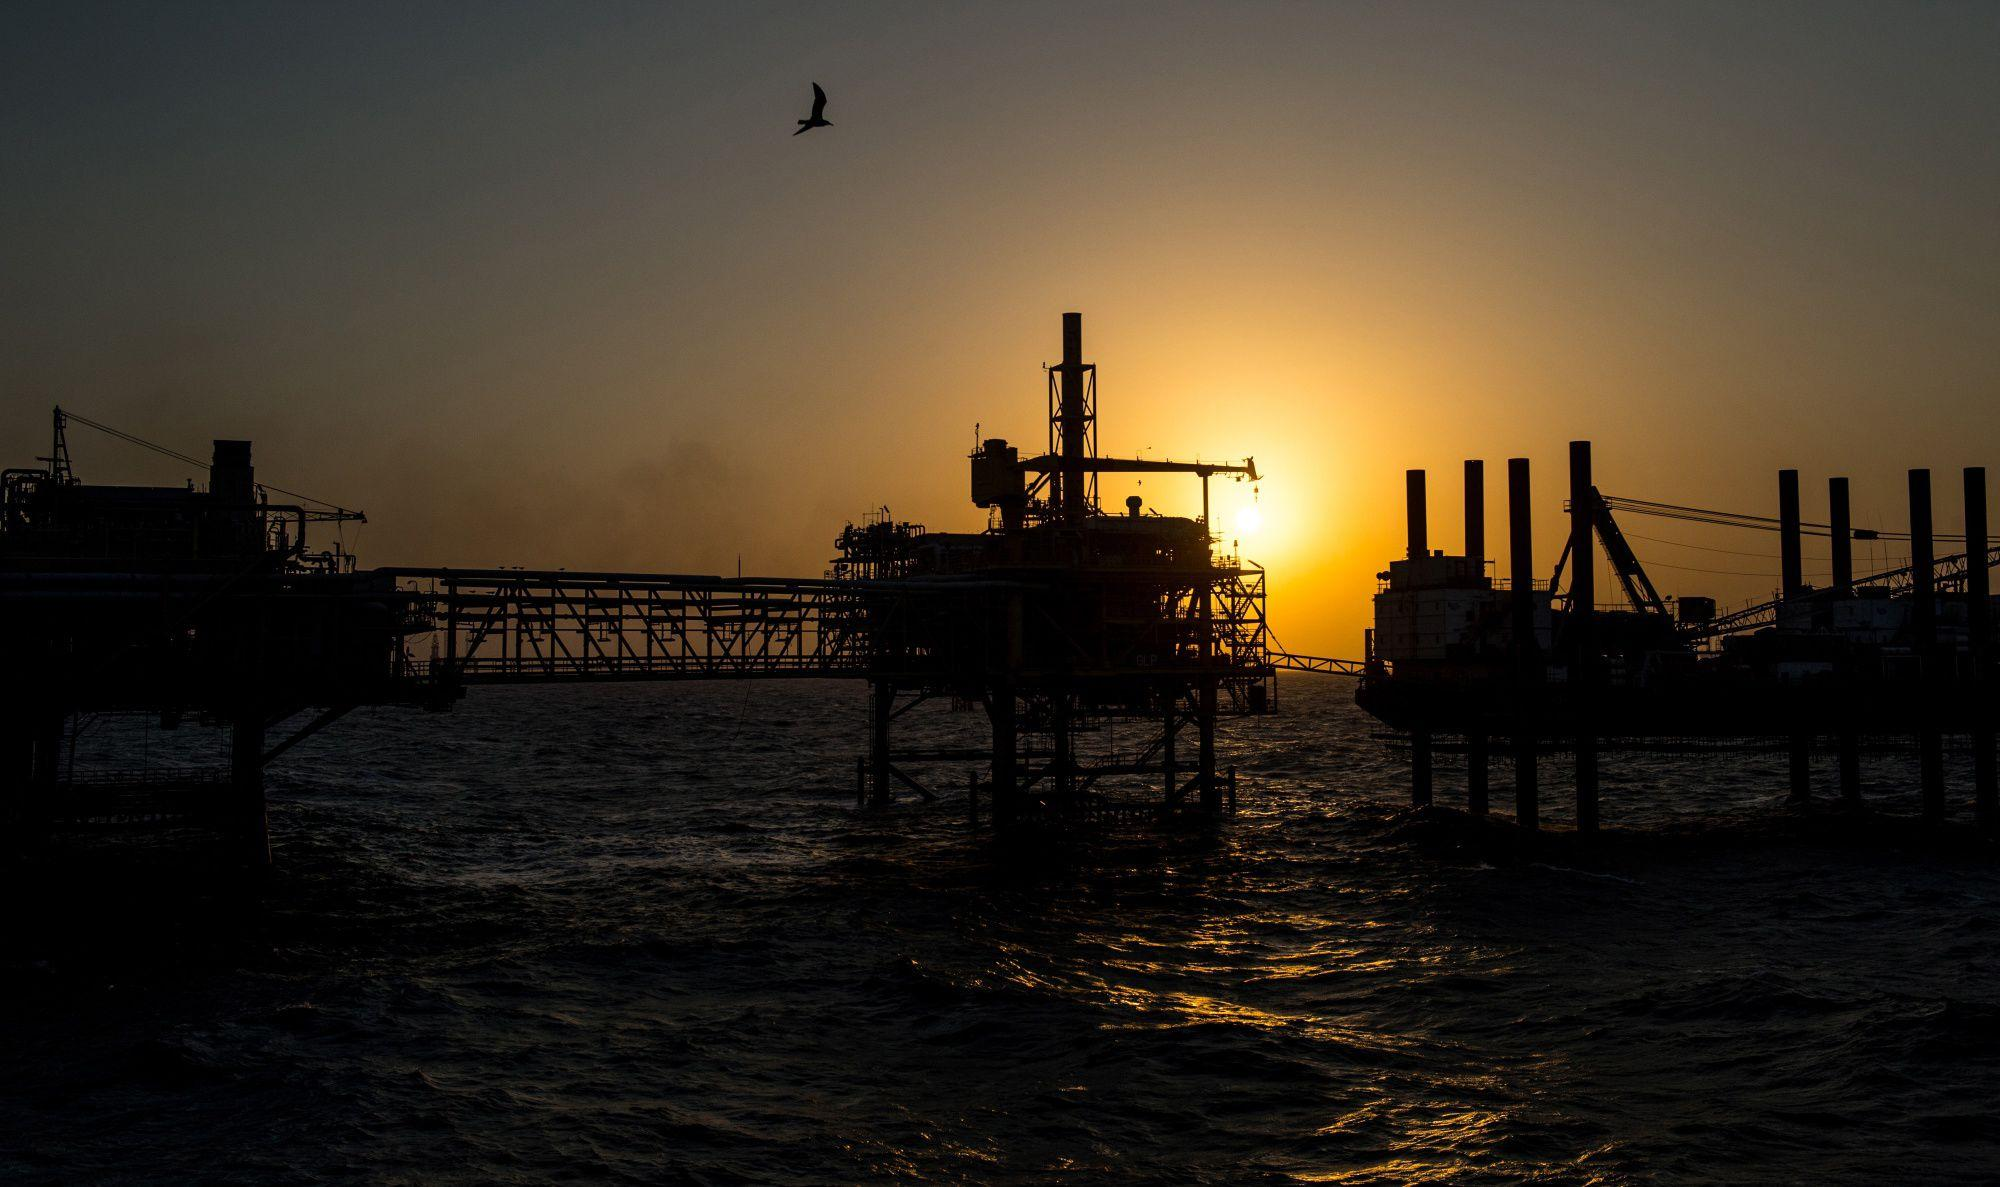 Brent Oil Soars Above $80 as Global Energy Crunch Shakes Markets